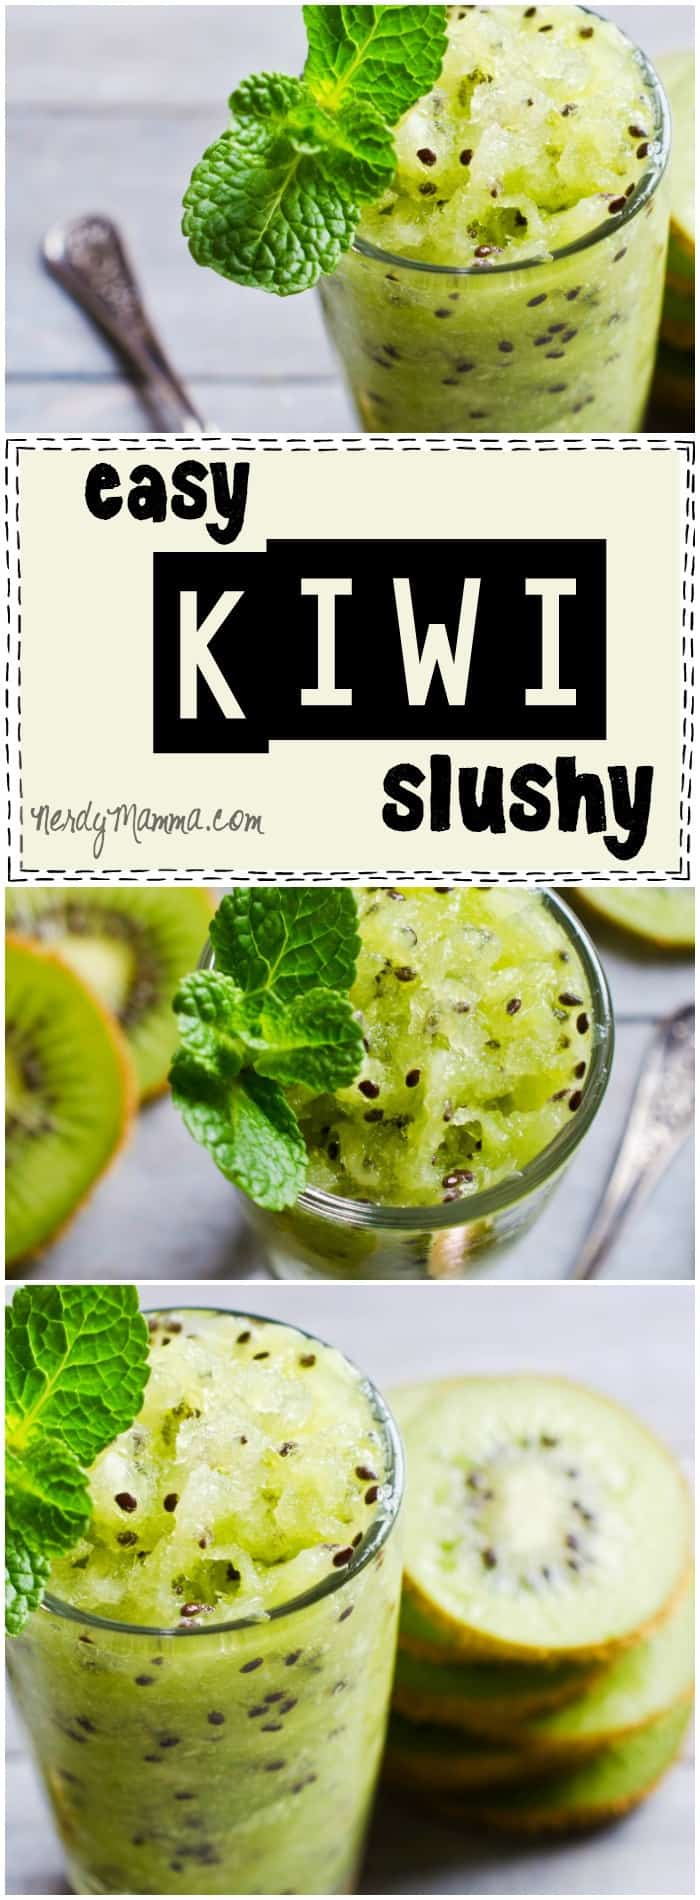 I love this recipe for this easy kiwi slushy! It sounds like it would be so refreshing. And my kids will really enjoy it.